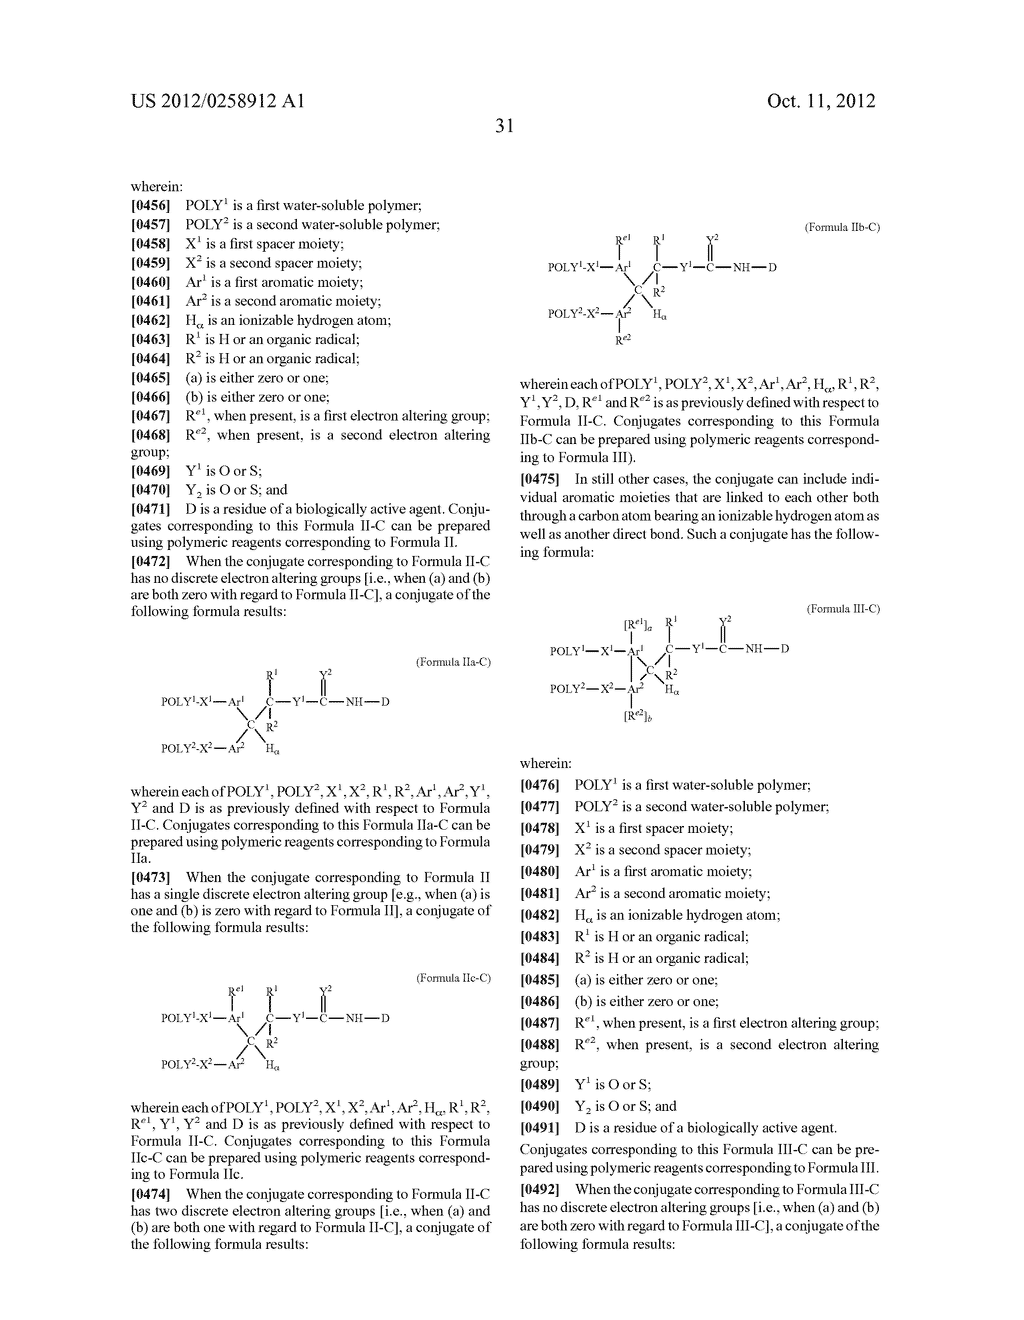 PHARMACEUTICAL COMPOSITIONS AND METHODS FOR DELIVERING SUCH COMPOSITIONS - diagram, schematic, and image 44